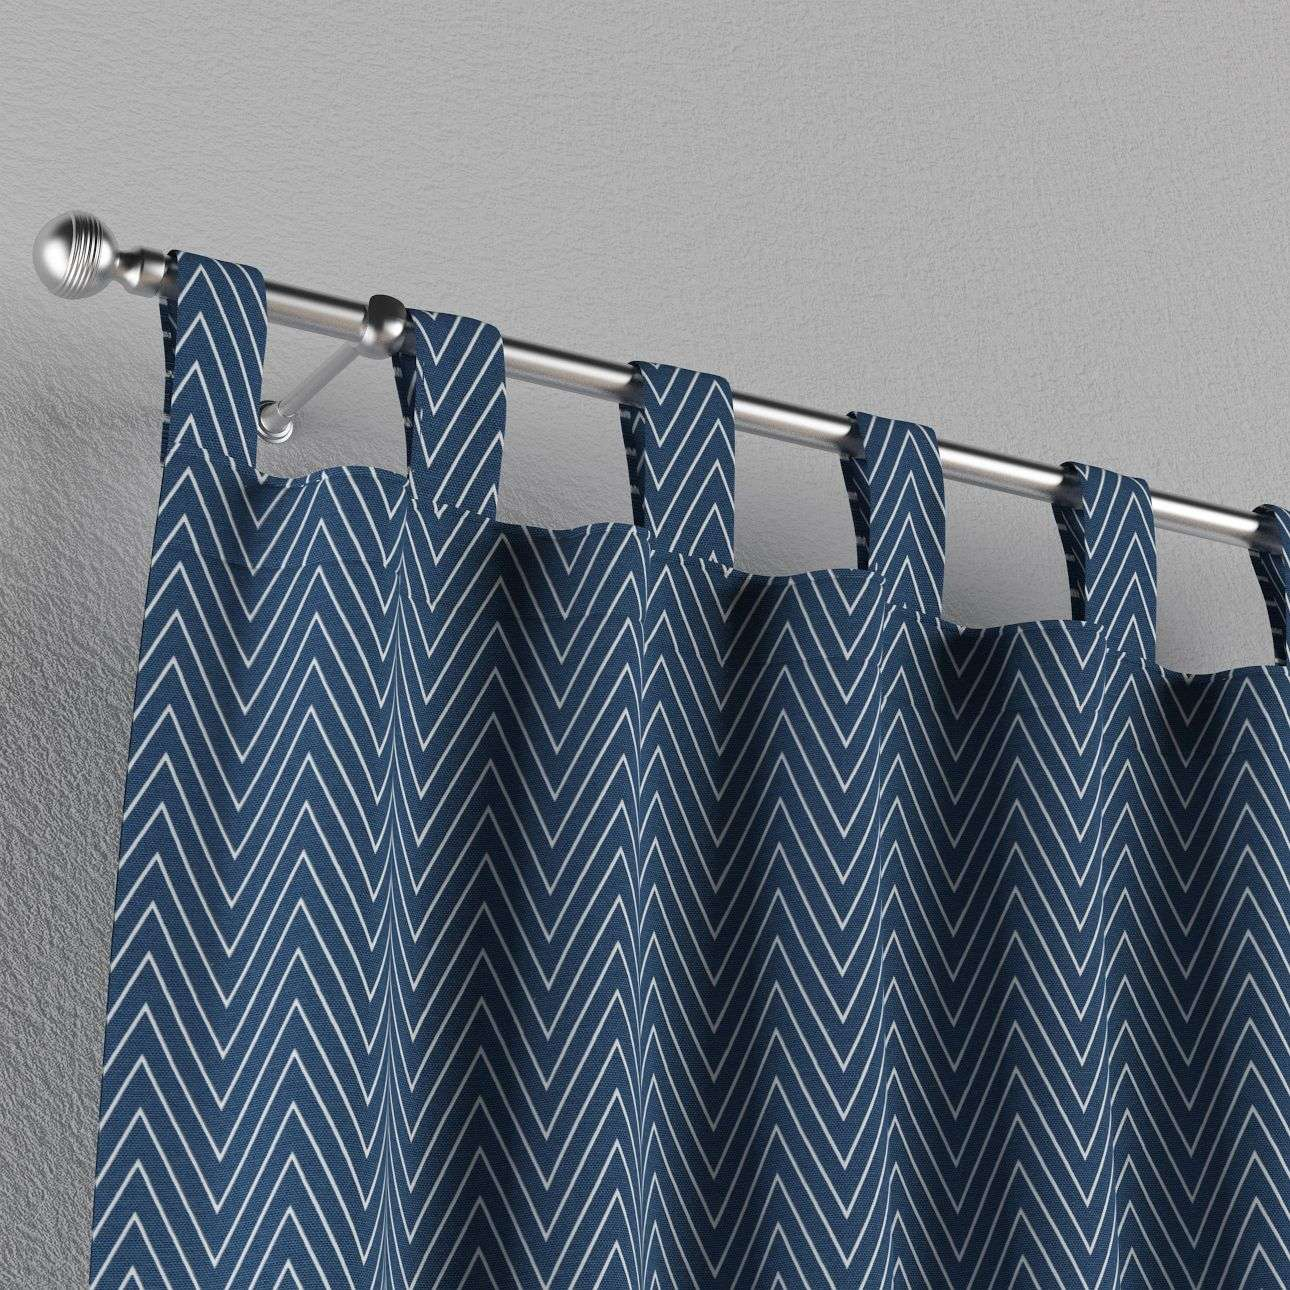 Tab top curtains 130 x 260 cm (51 x 102 inch) in collection Brooklyn, fabric: 137-88